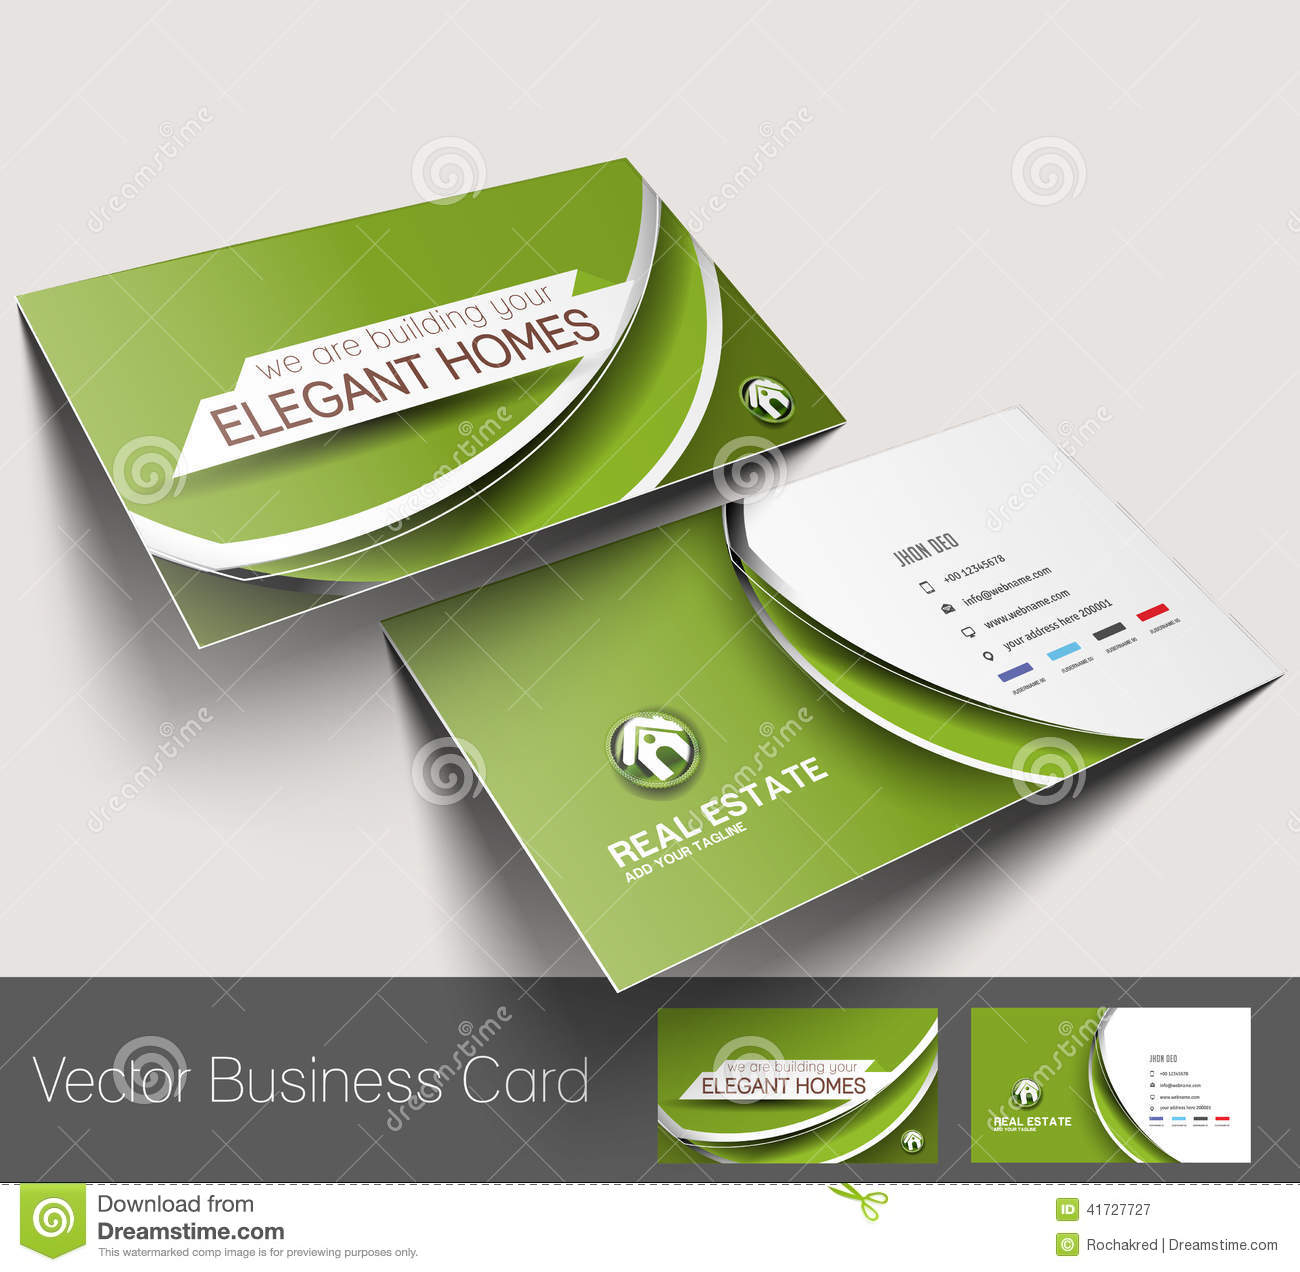 Real estate development business cards gallery card design and real estate business card template gallery templates example real estate agent business card stock vector illustration alramifo Gallery